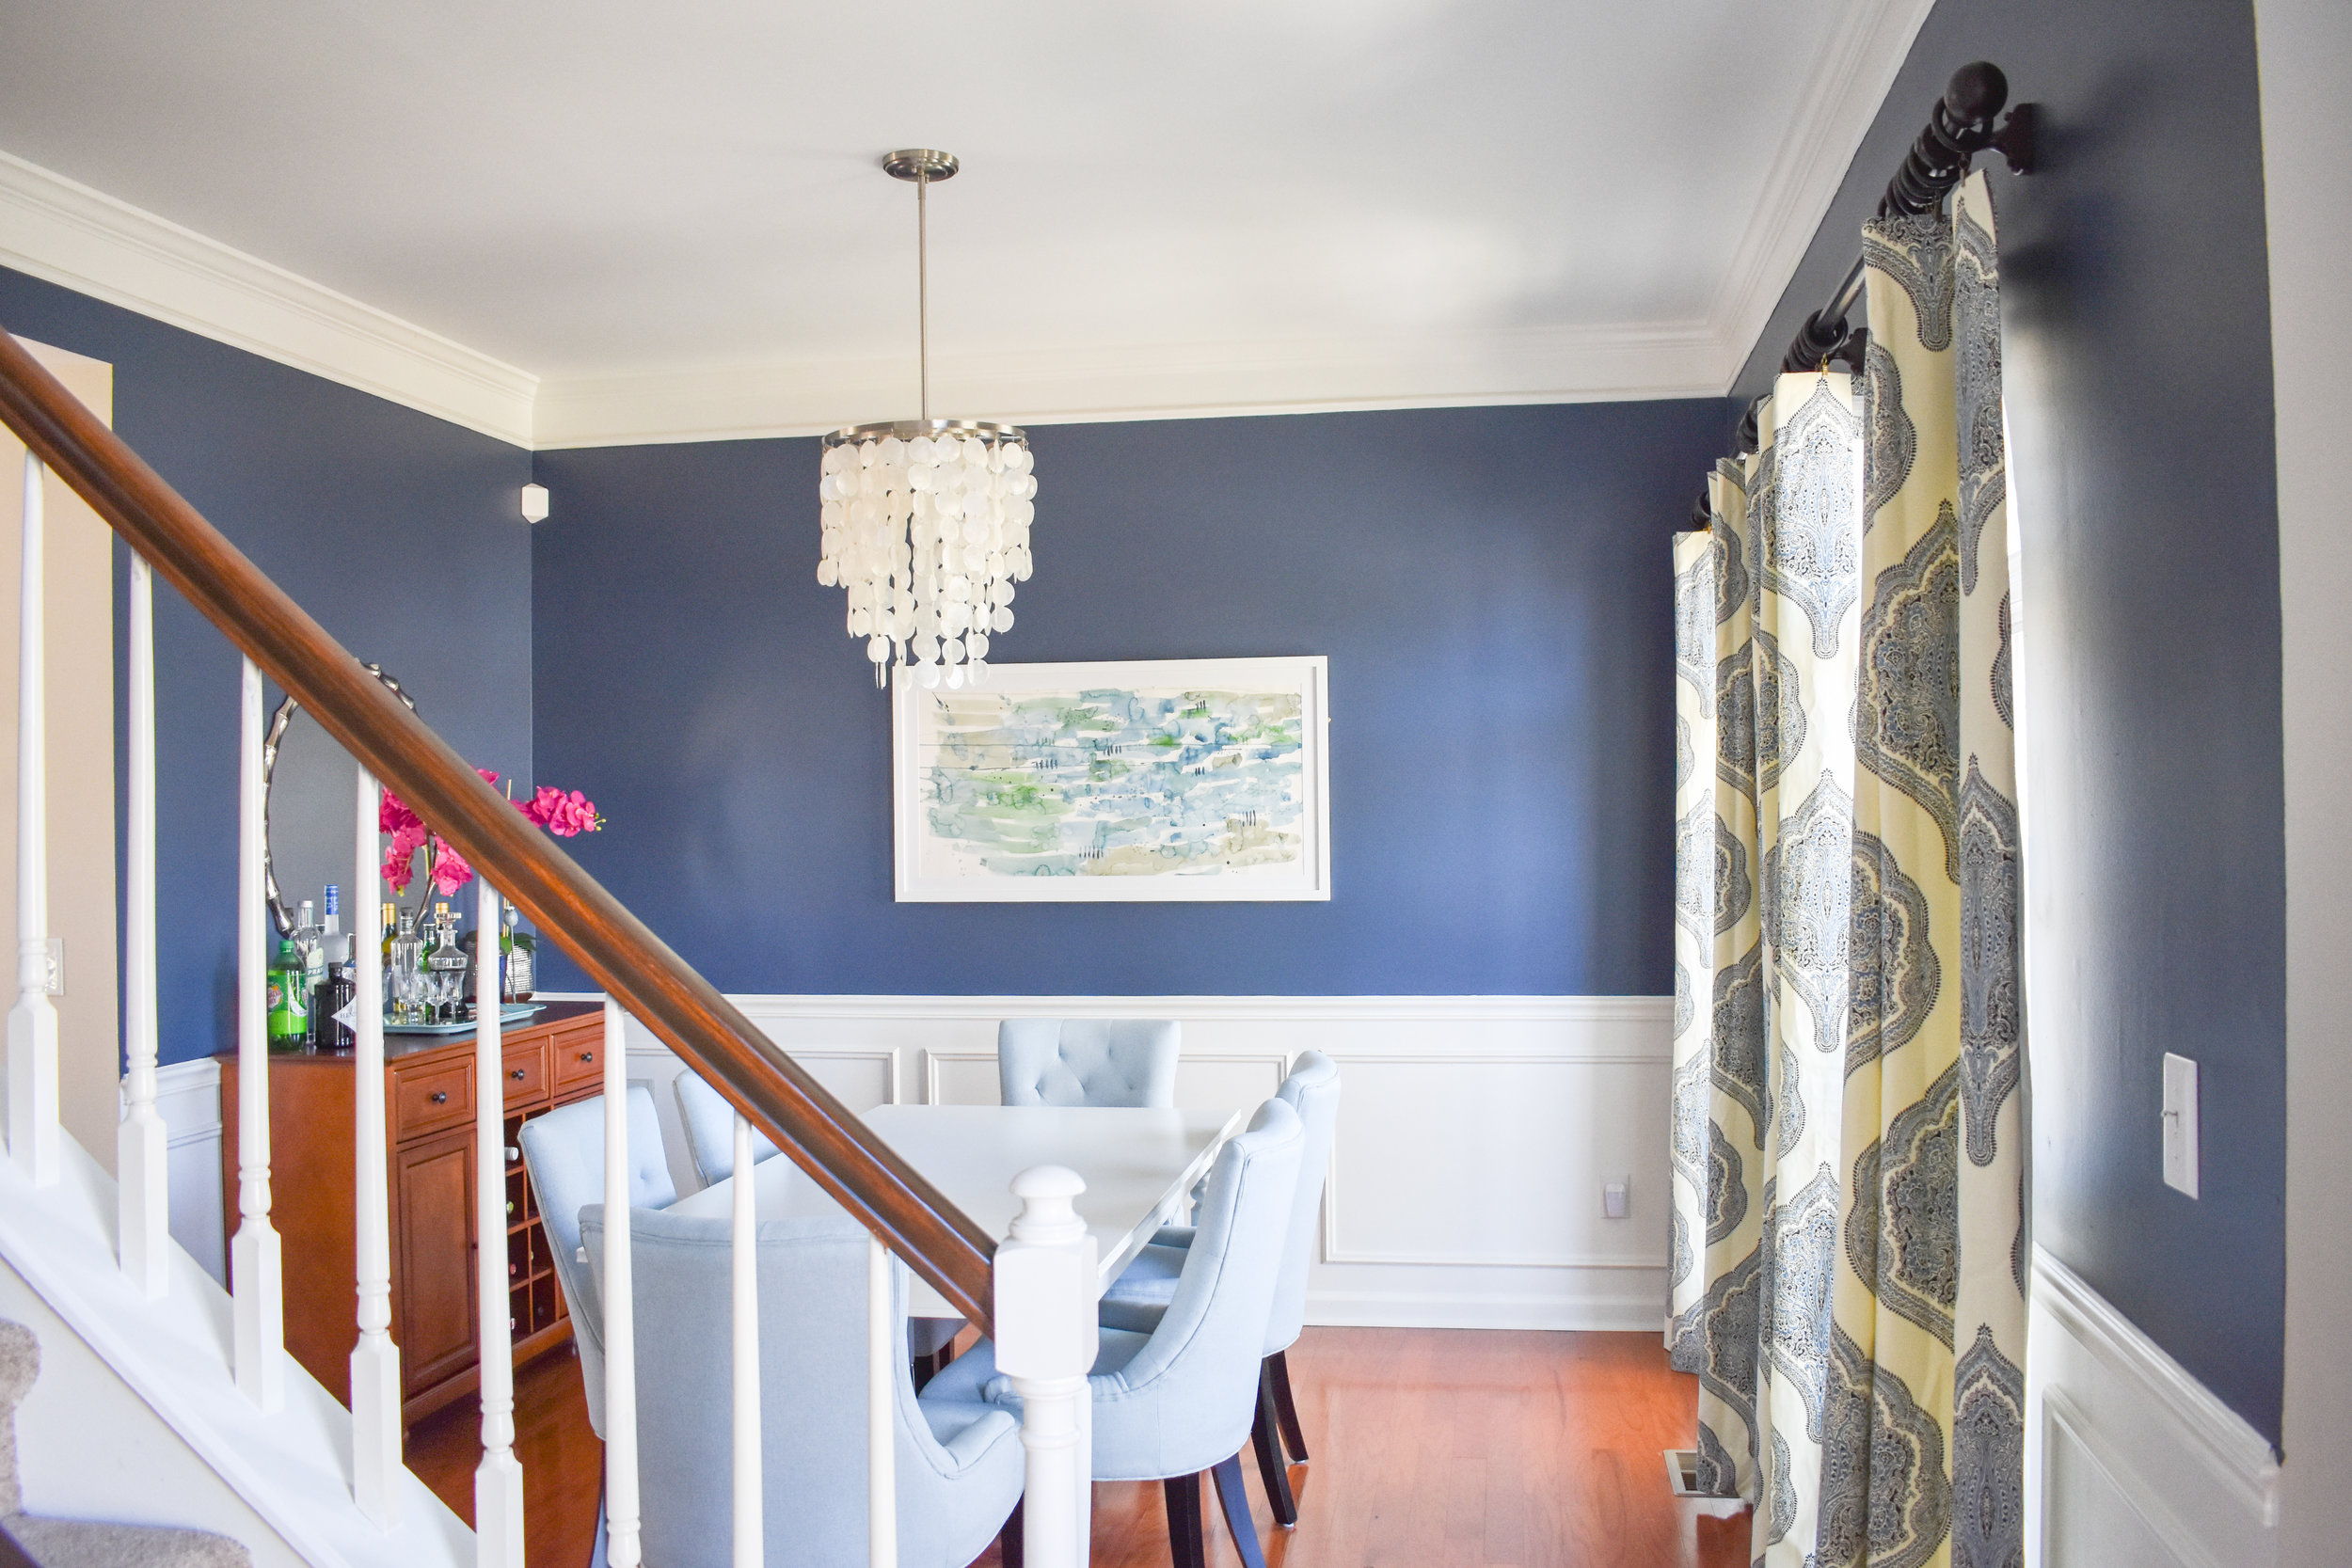 Upscale transitional is the name of the suburban house game.